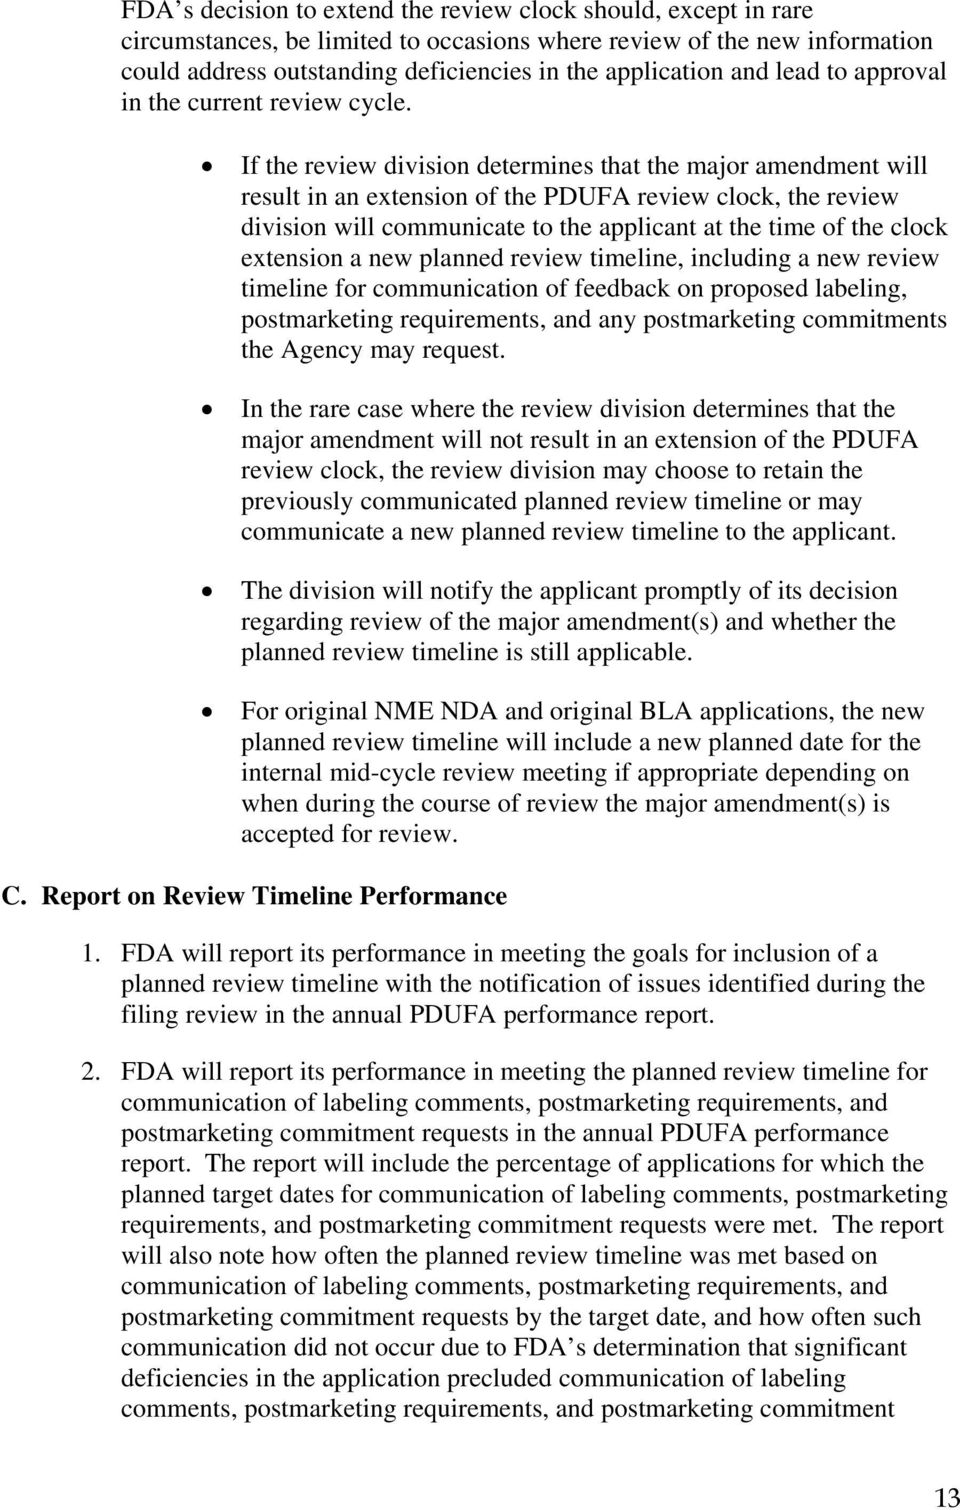 If the review division determines that the major amendment will result in an extension of the PDUFA review clock, the review division will communicate to the applicant at the time of the clock